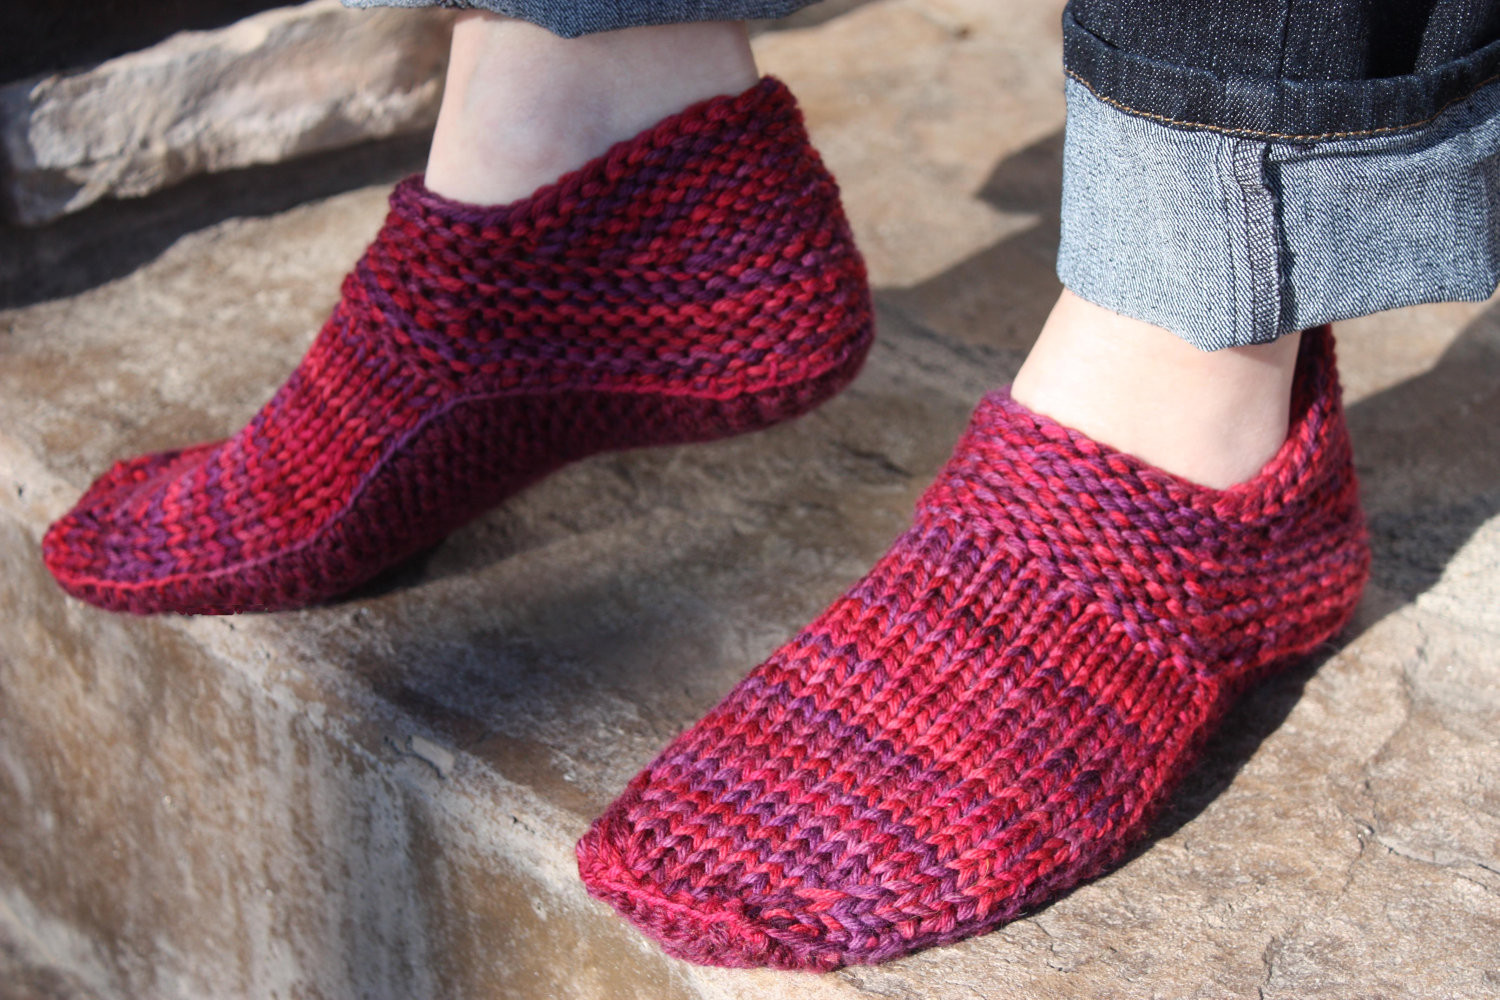 Beautiful Knitted Slippers to Keep Your Feet Warm and Cozy Crochet Knitted Booties for Adults Of Delightful 47 Images Knitted Booties for Adults